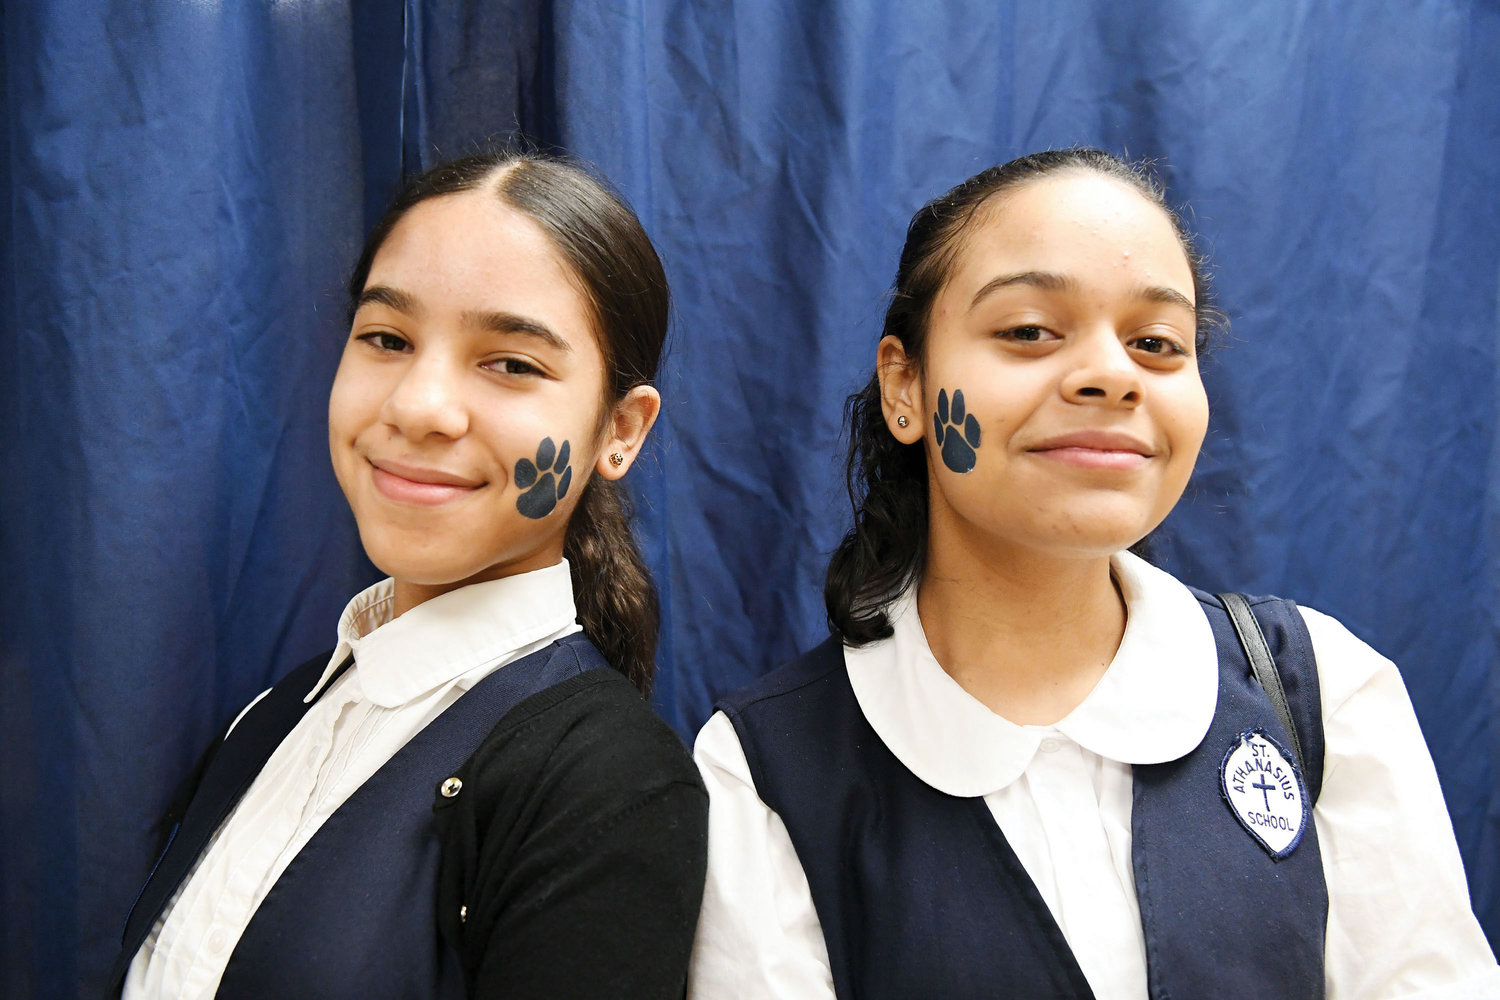 Jaelynn Rodriguez and Jennifer Moria sport bear claw face stickers representing the school mascot.